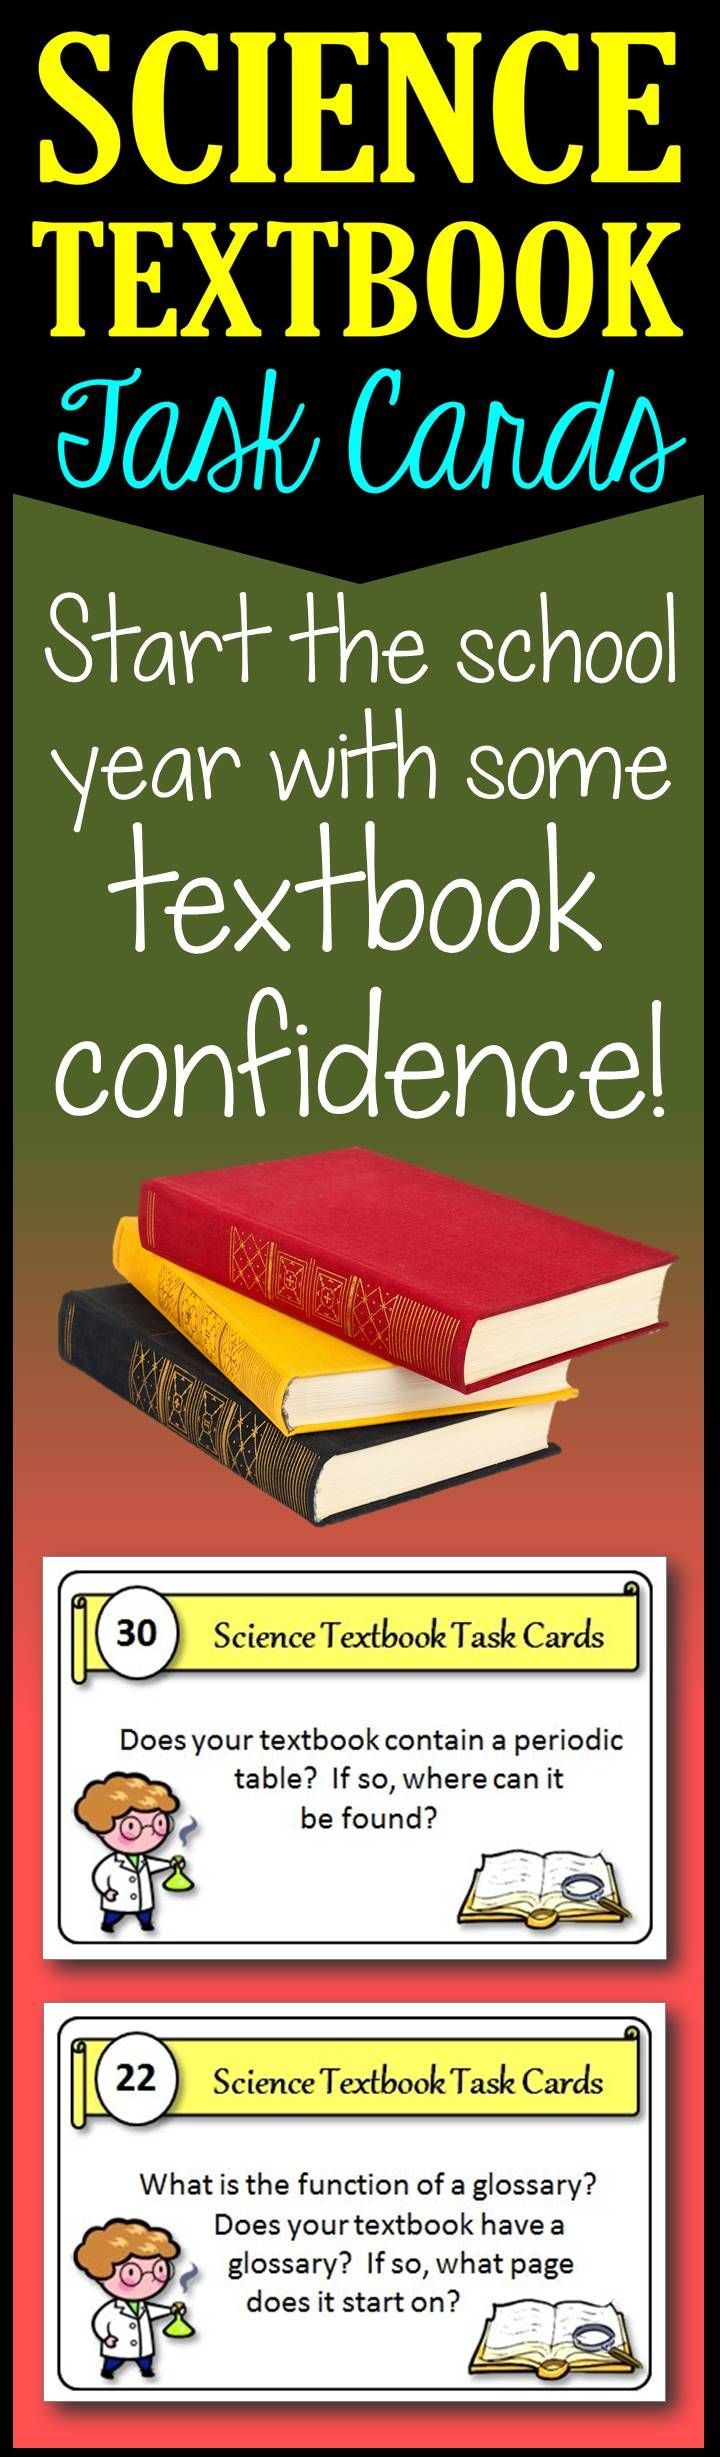 32 Science Textbook Task Cards give your students confidence to use their science textbooks.  Working in groups or alone, students become comfortable and familiar with their textbooks.  A great activity to start your science class!